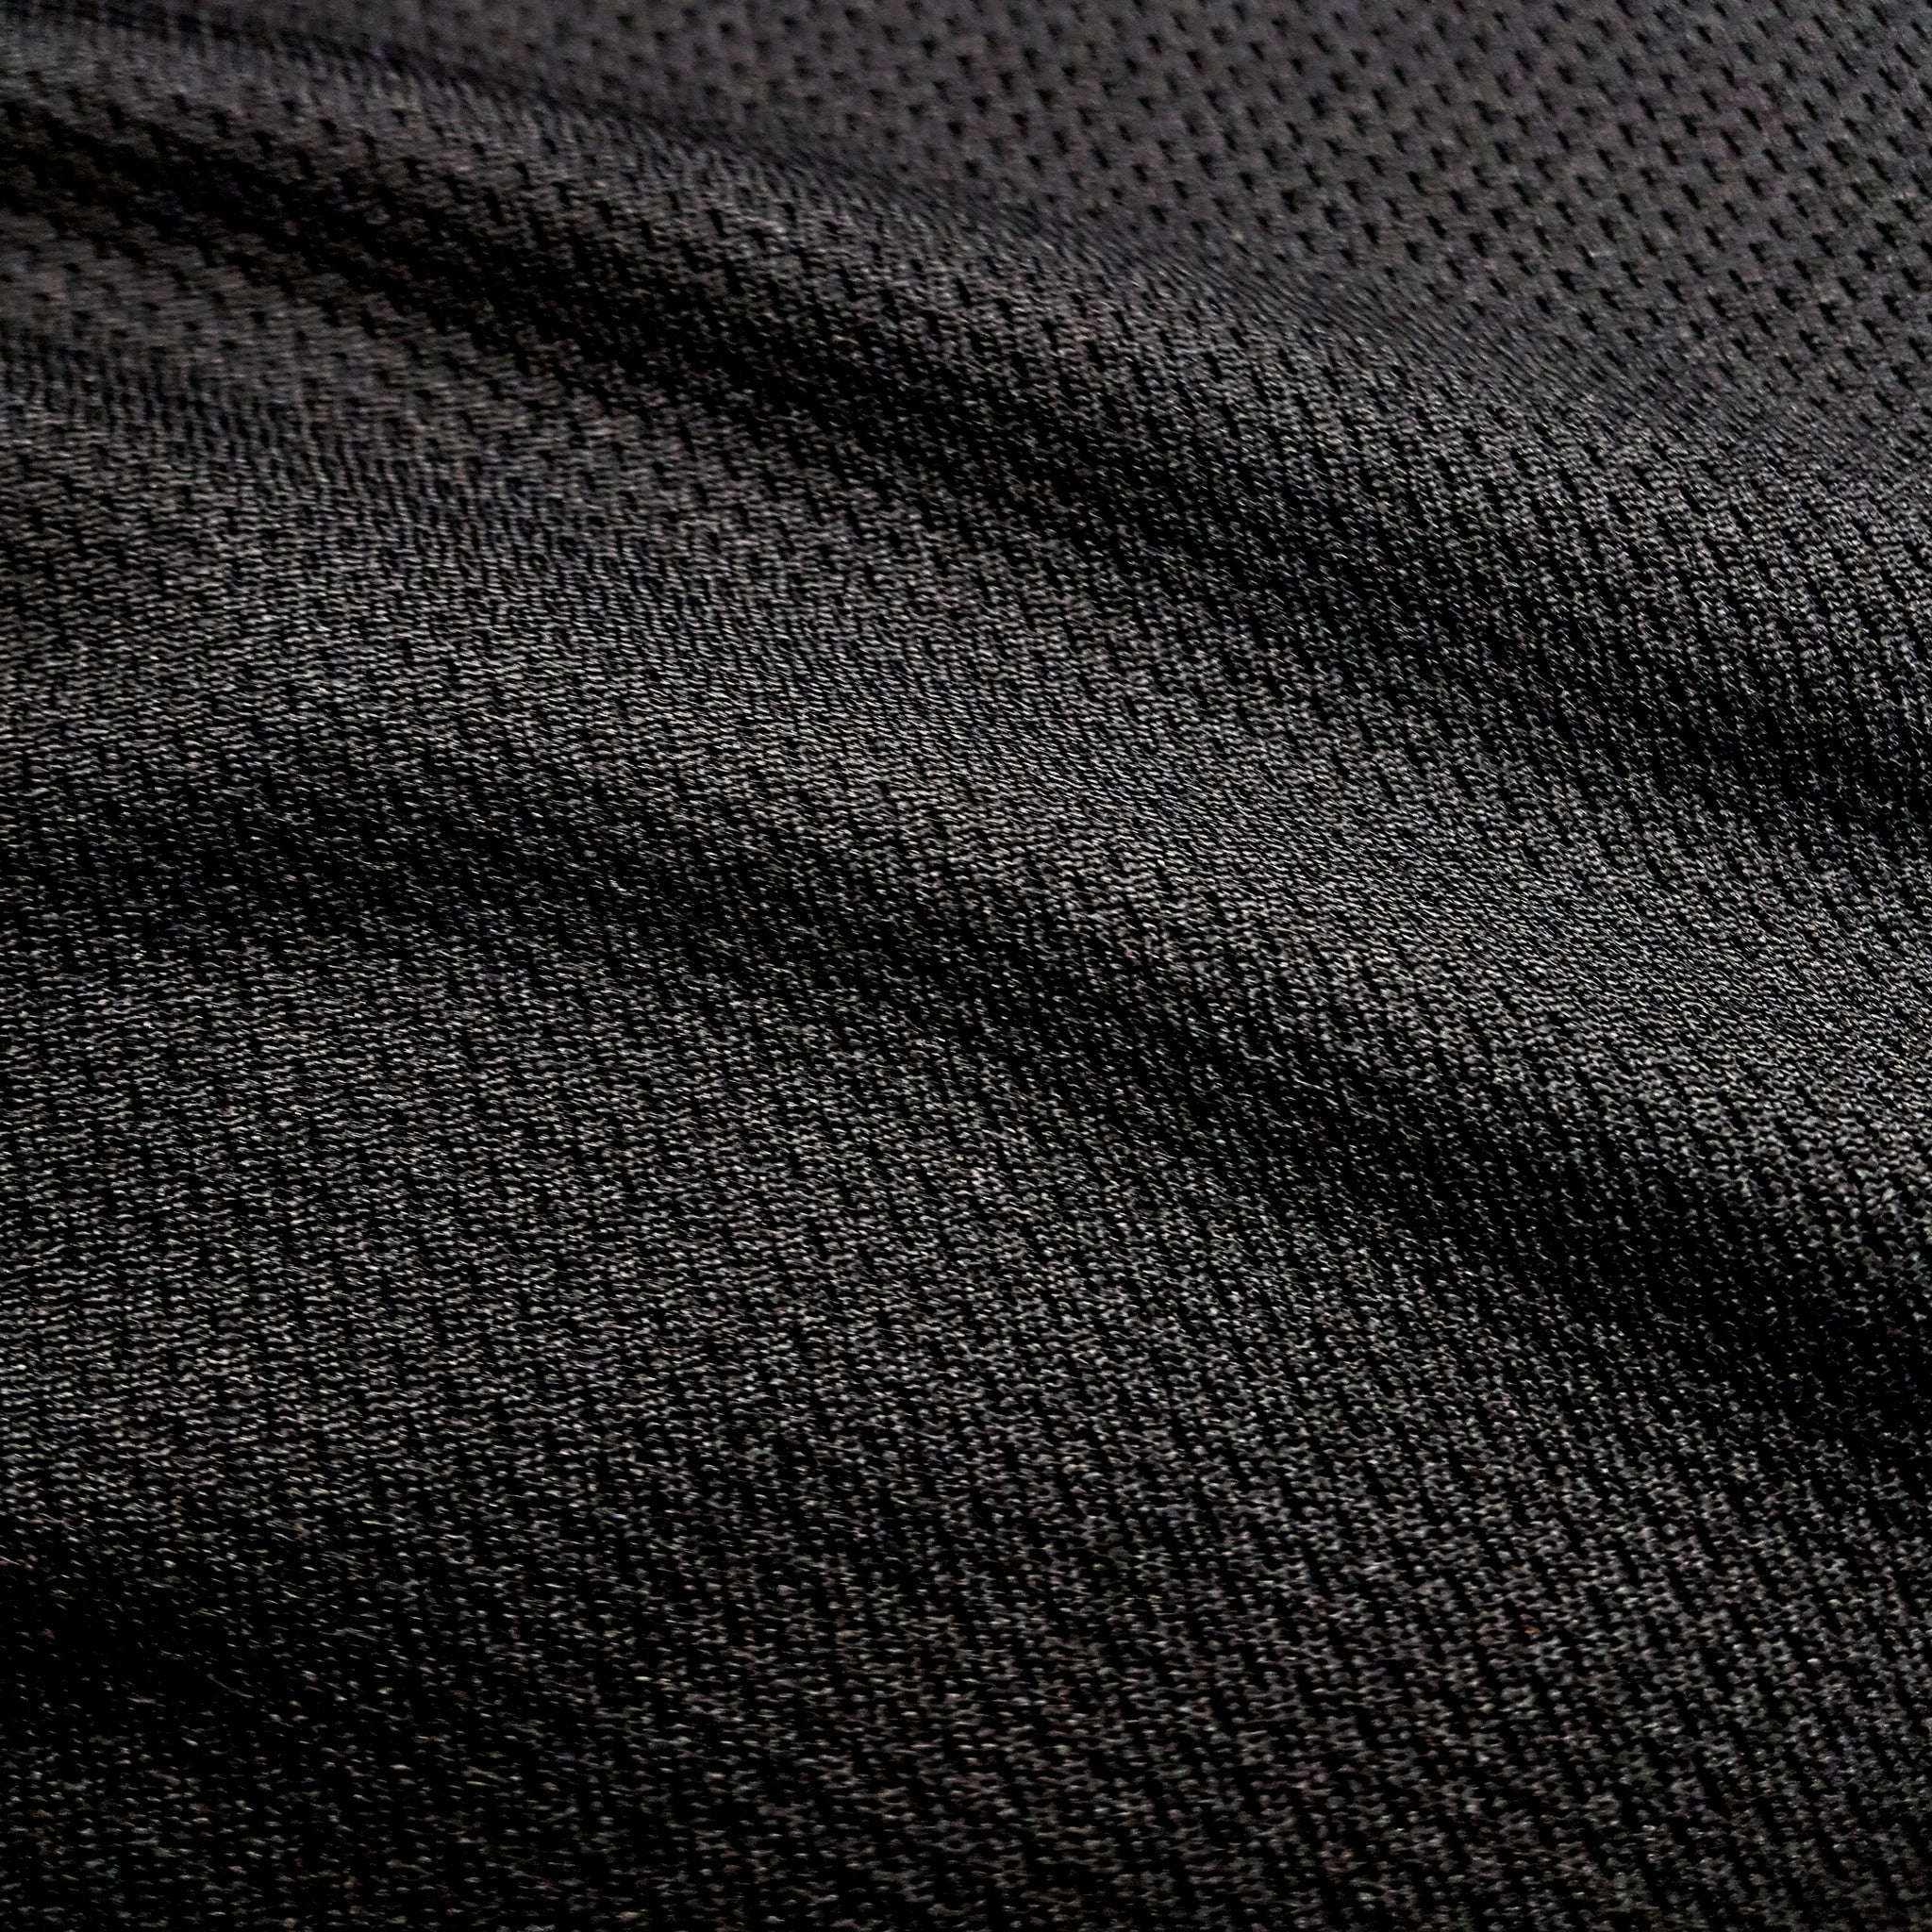 SportyFish Black Series black t-shirt(japanese): Atlantic Sailfish close-up view 3